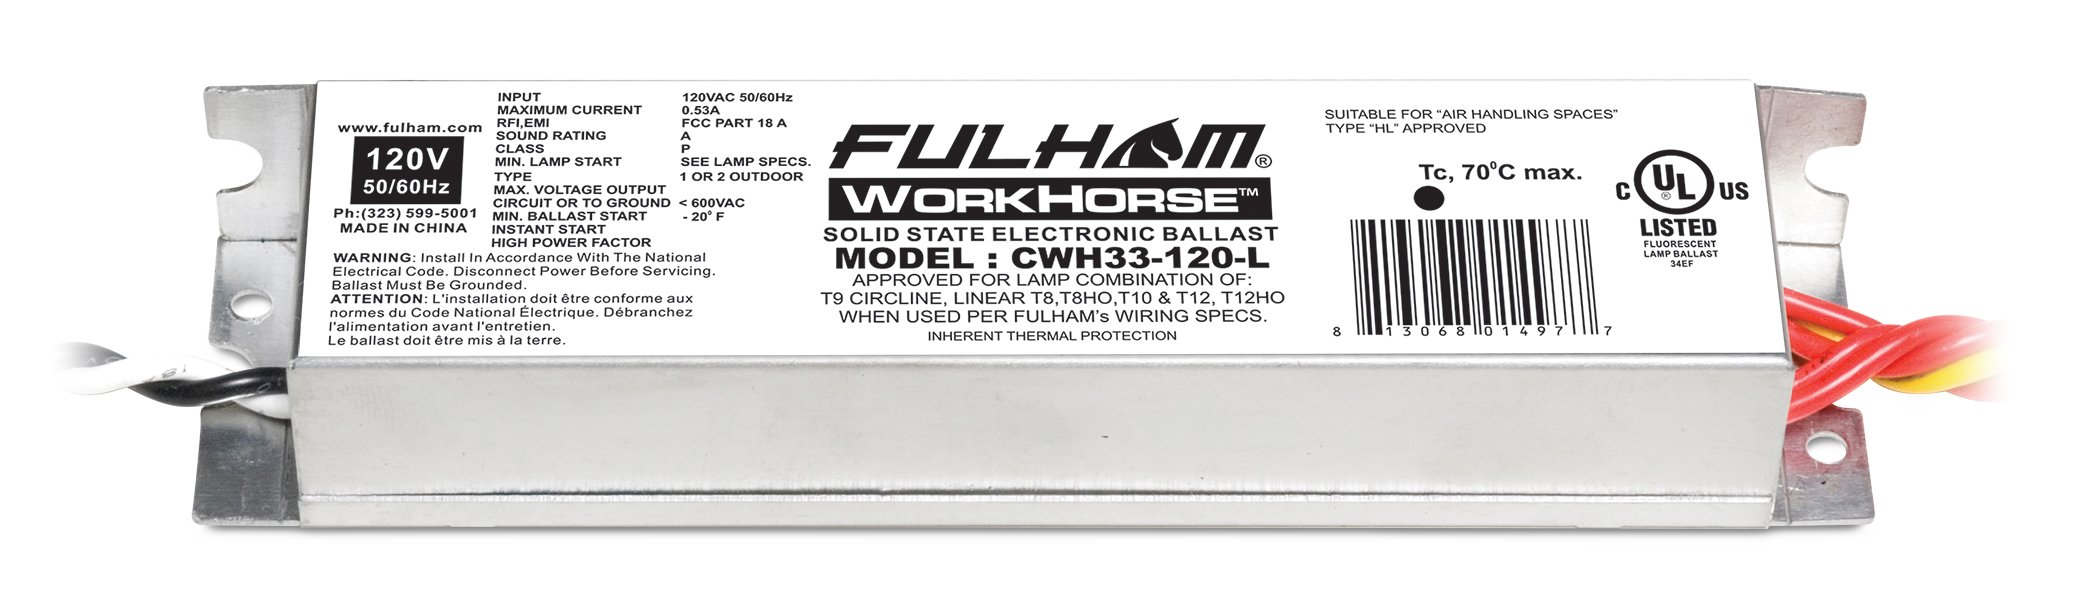 Fulham Lighting CWH33-120-L Canada Series-Workhorse 33-120V-Linear Model with Side Leads